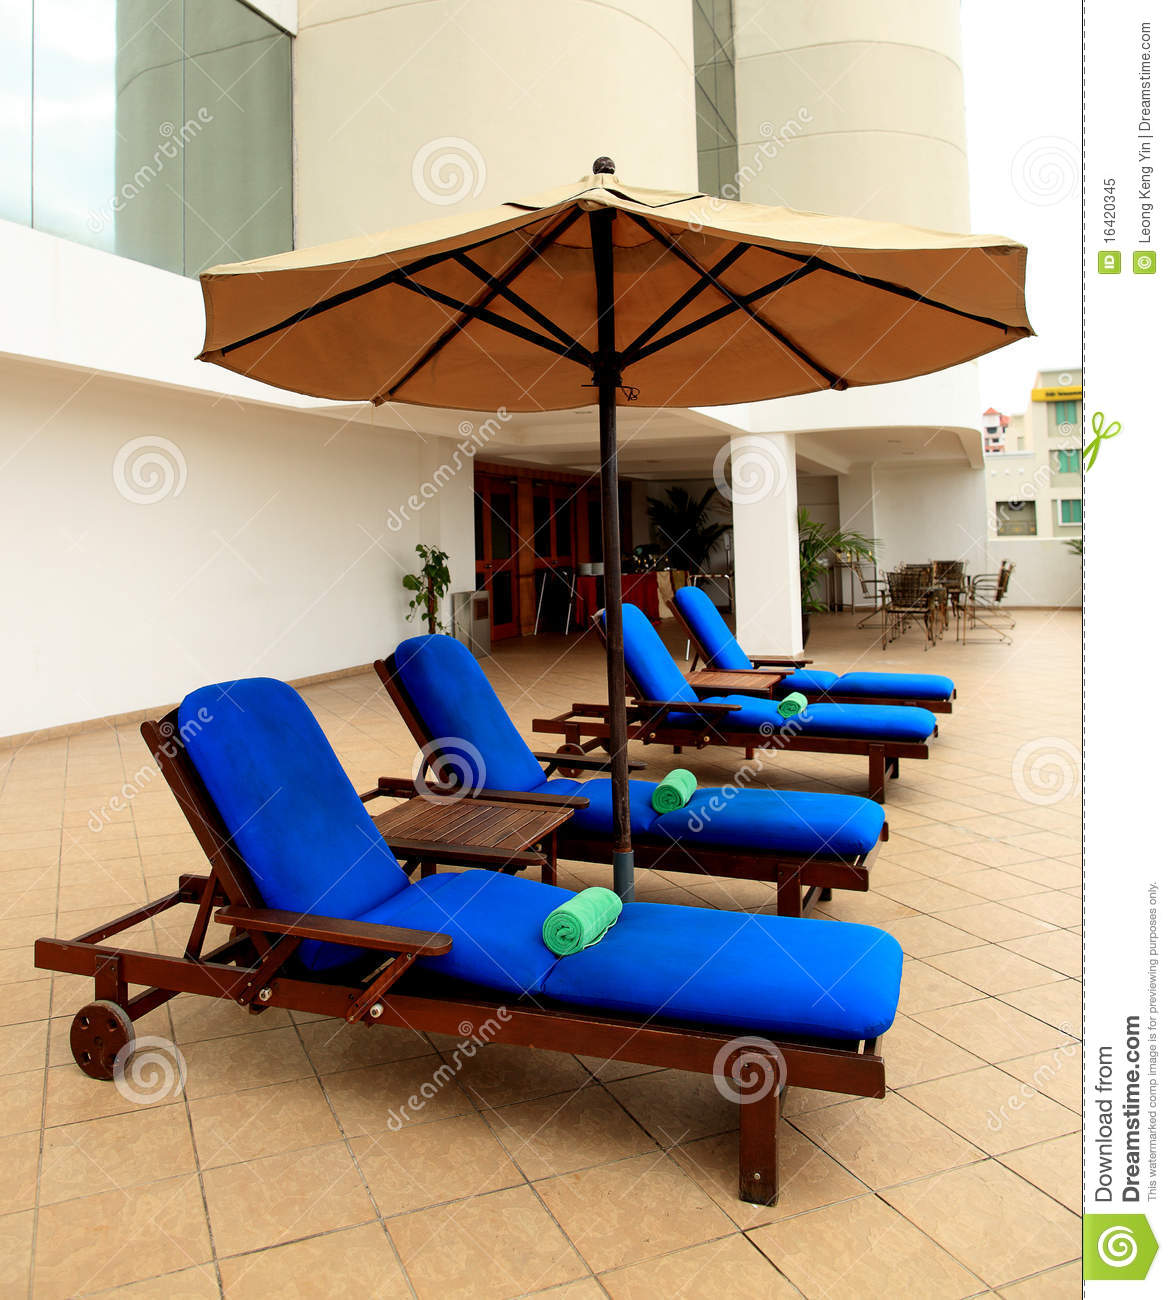 Lounge Chairs Poolside Royalty Free Stock Image